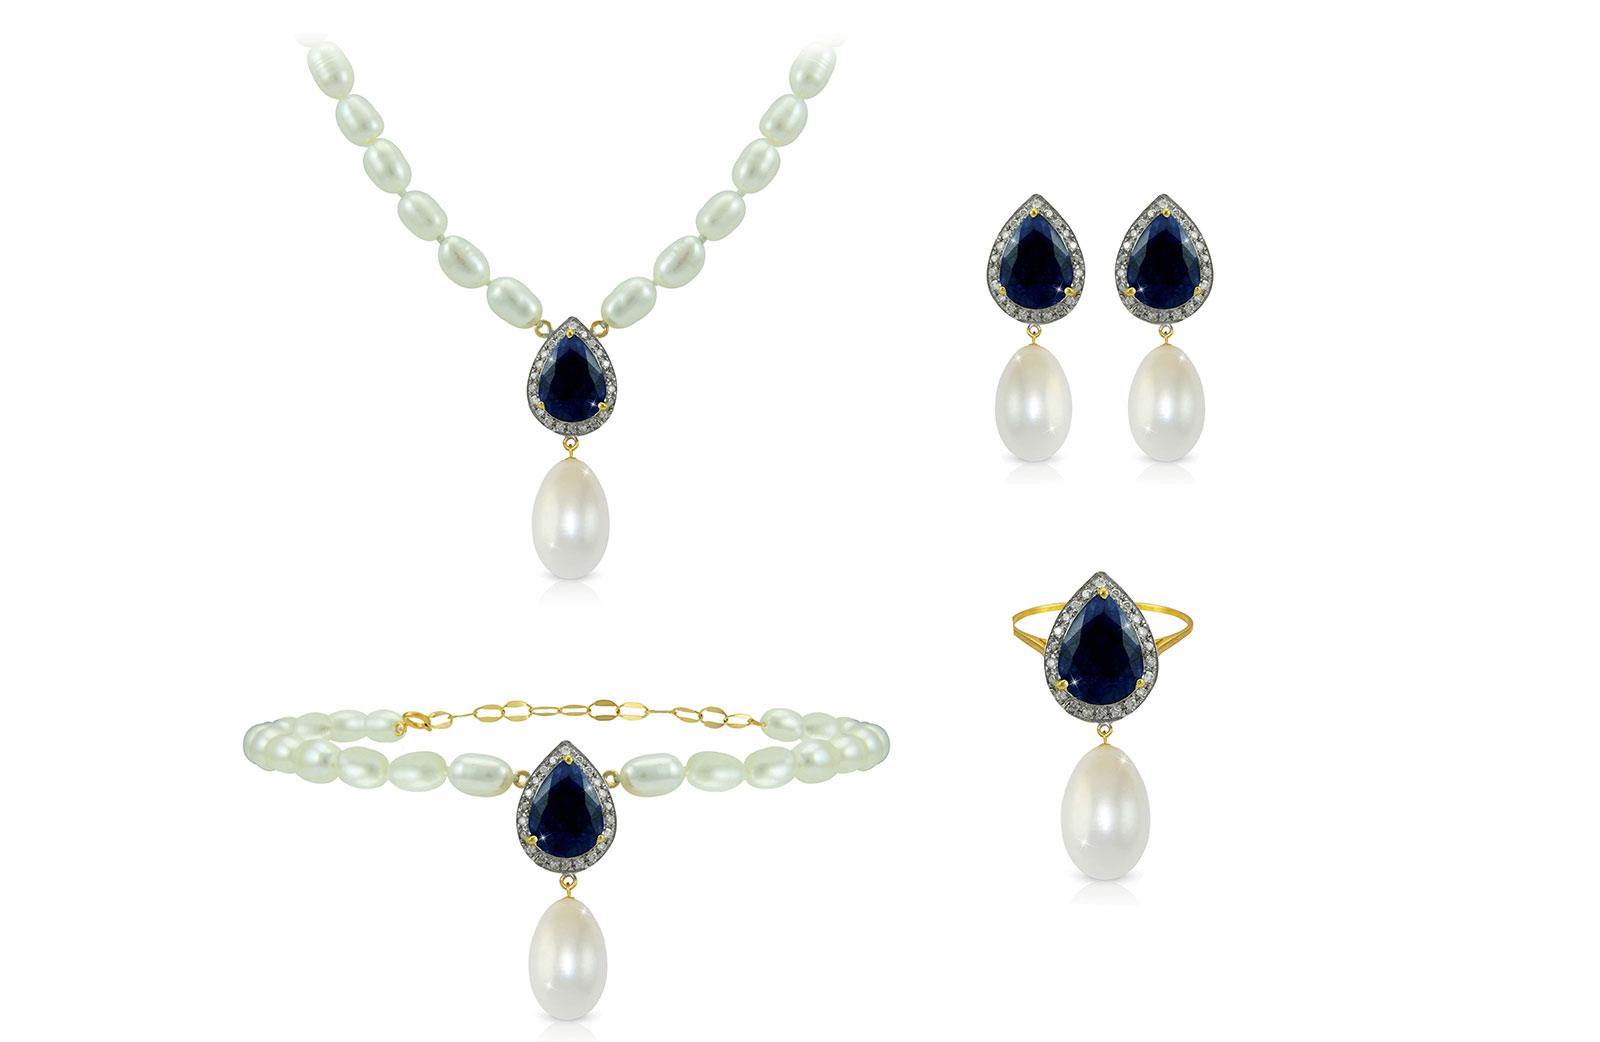 Vera Perla 18K Gold 0.60ct Diamonds, Royal Indian Sapphire and 13mm Pearl 4 pcs set